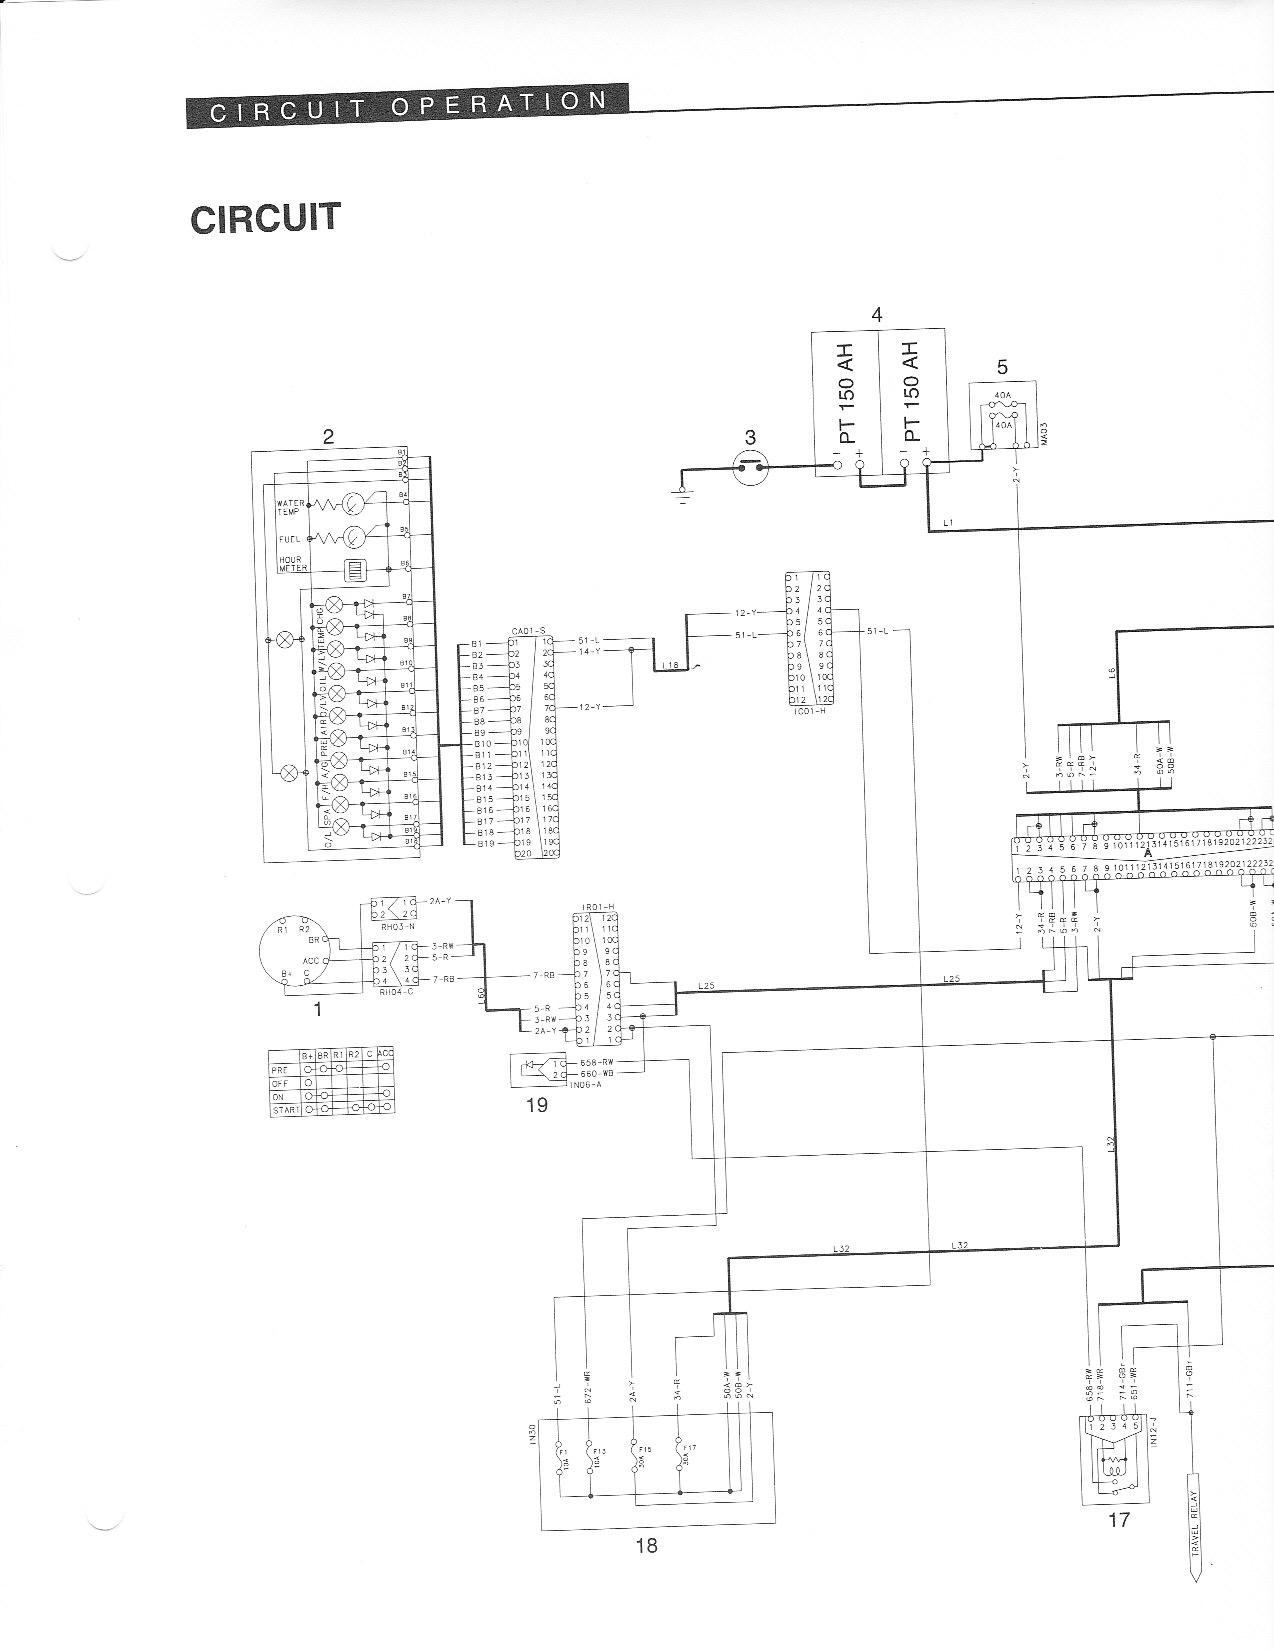 volvo construction wiring diagram key i have a 1990 samsung se280 3 excavator i have power to  i have a 1990 samsung se280 3 excavator i have power to